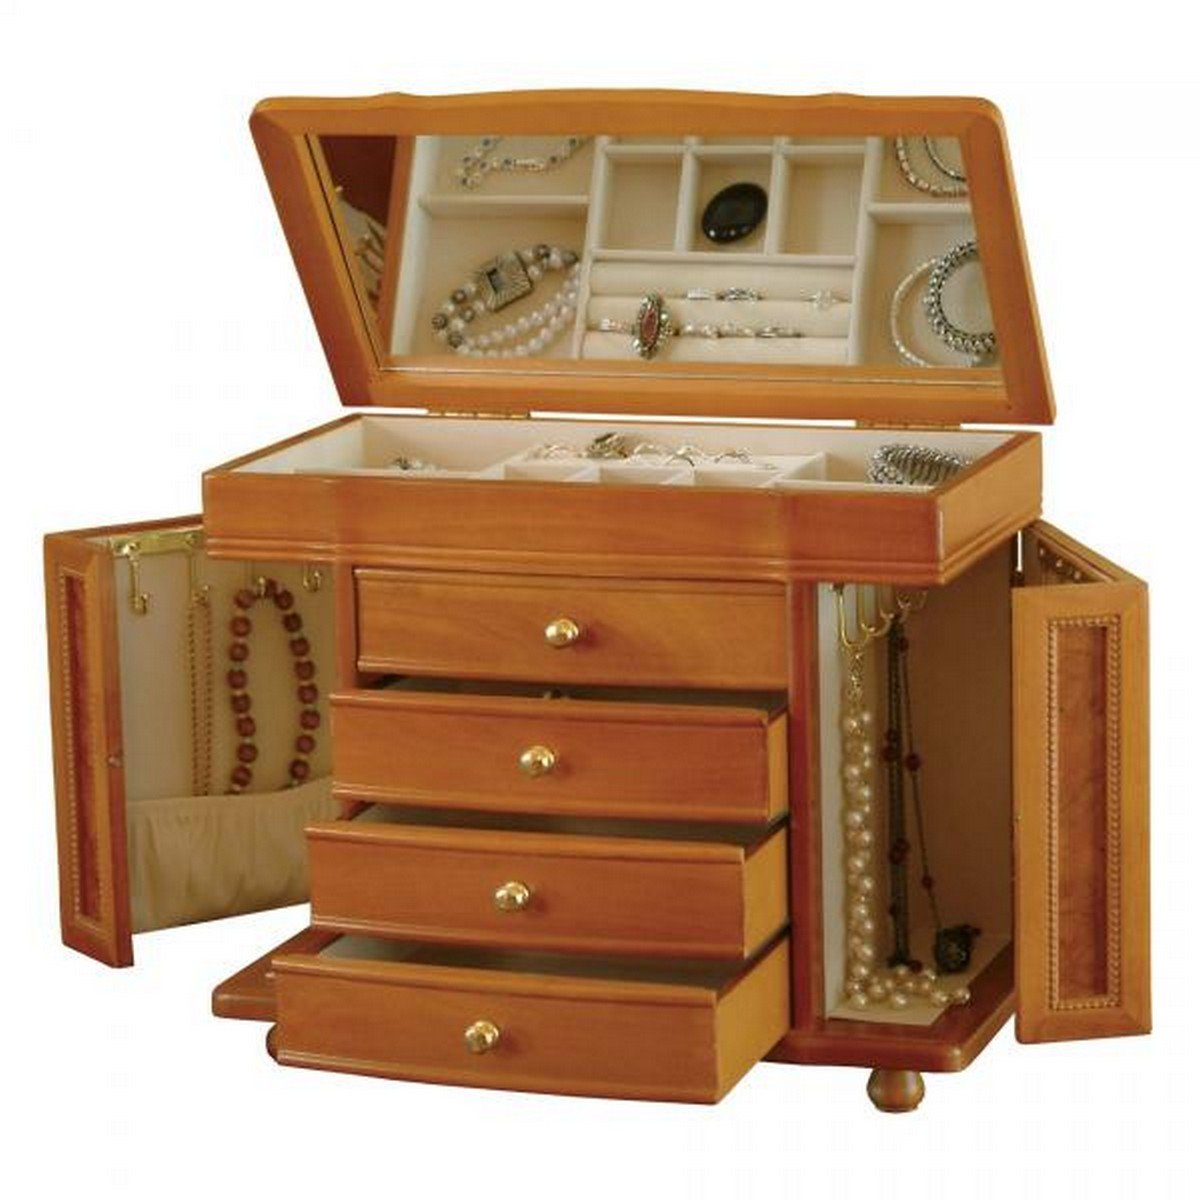 Wooden Box in Oak Finish w/ Burlwood Accents. Men's and Women's Classic Styled Jewel Chest and Storage Allurez MB81